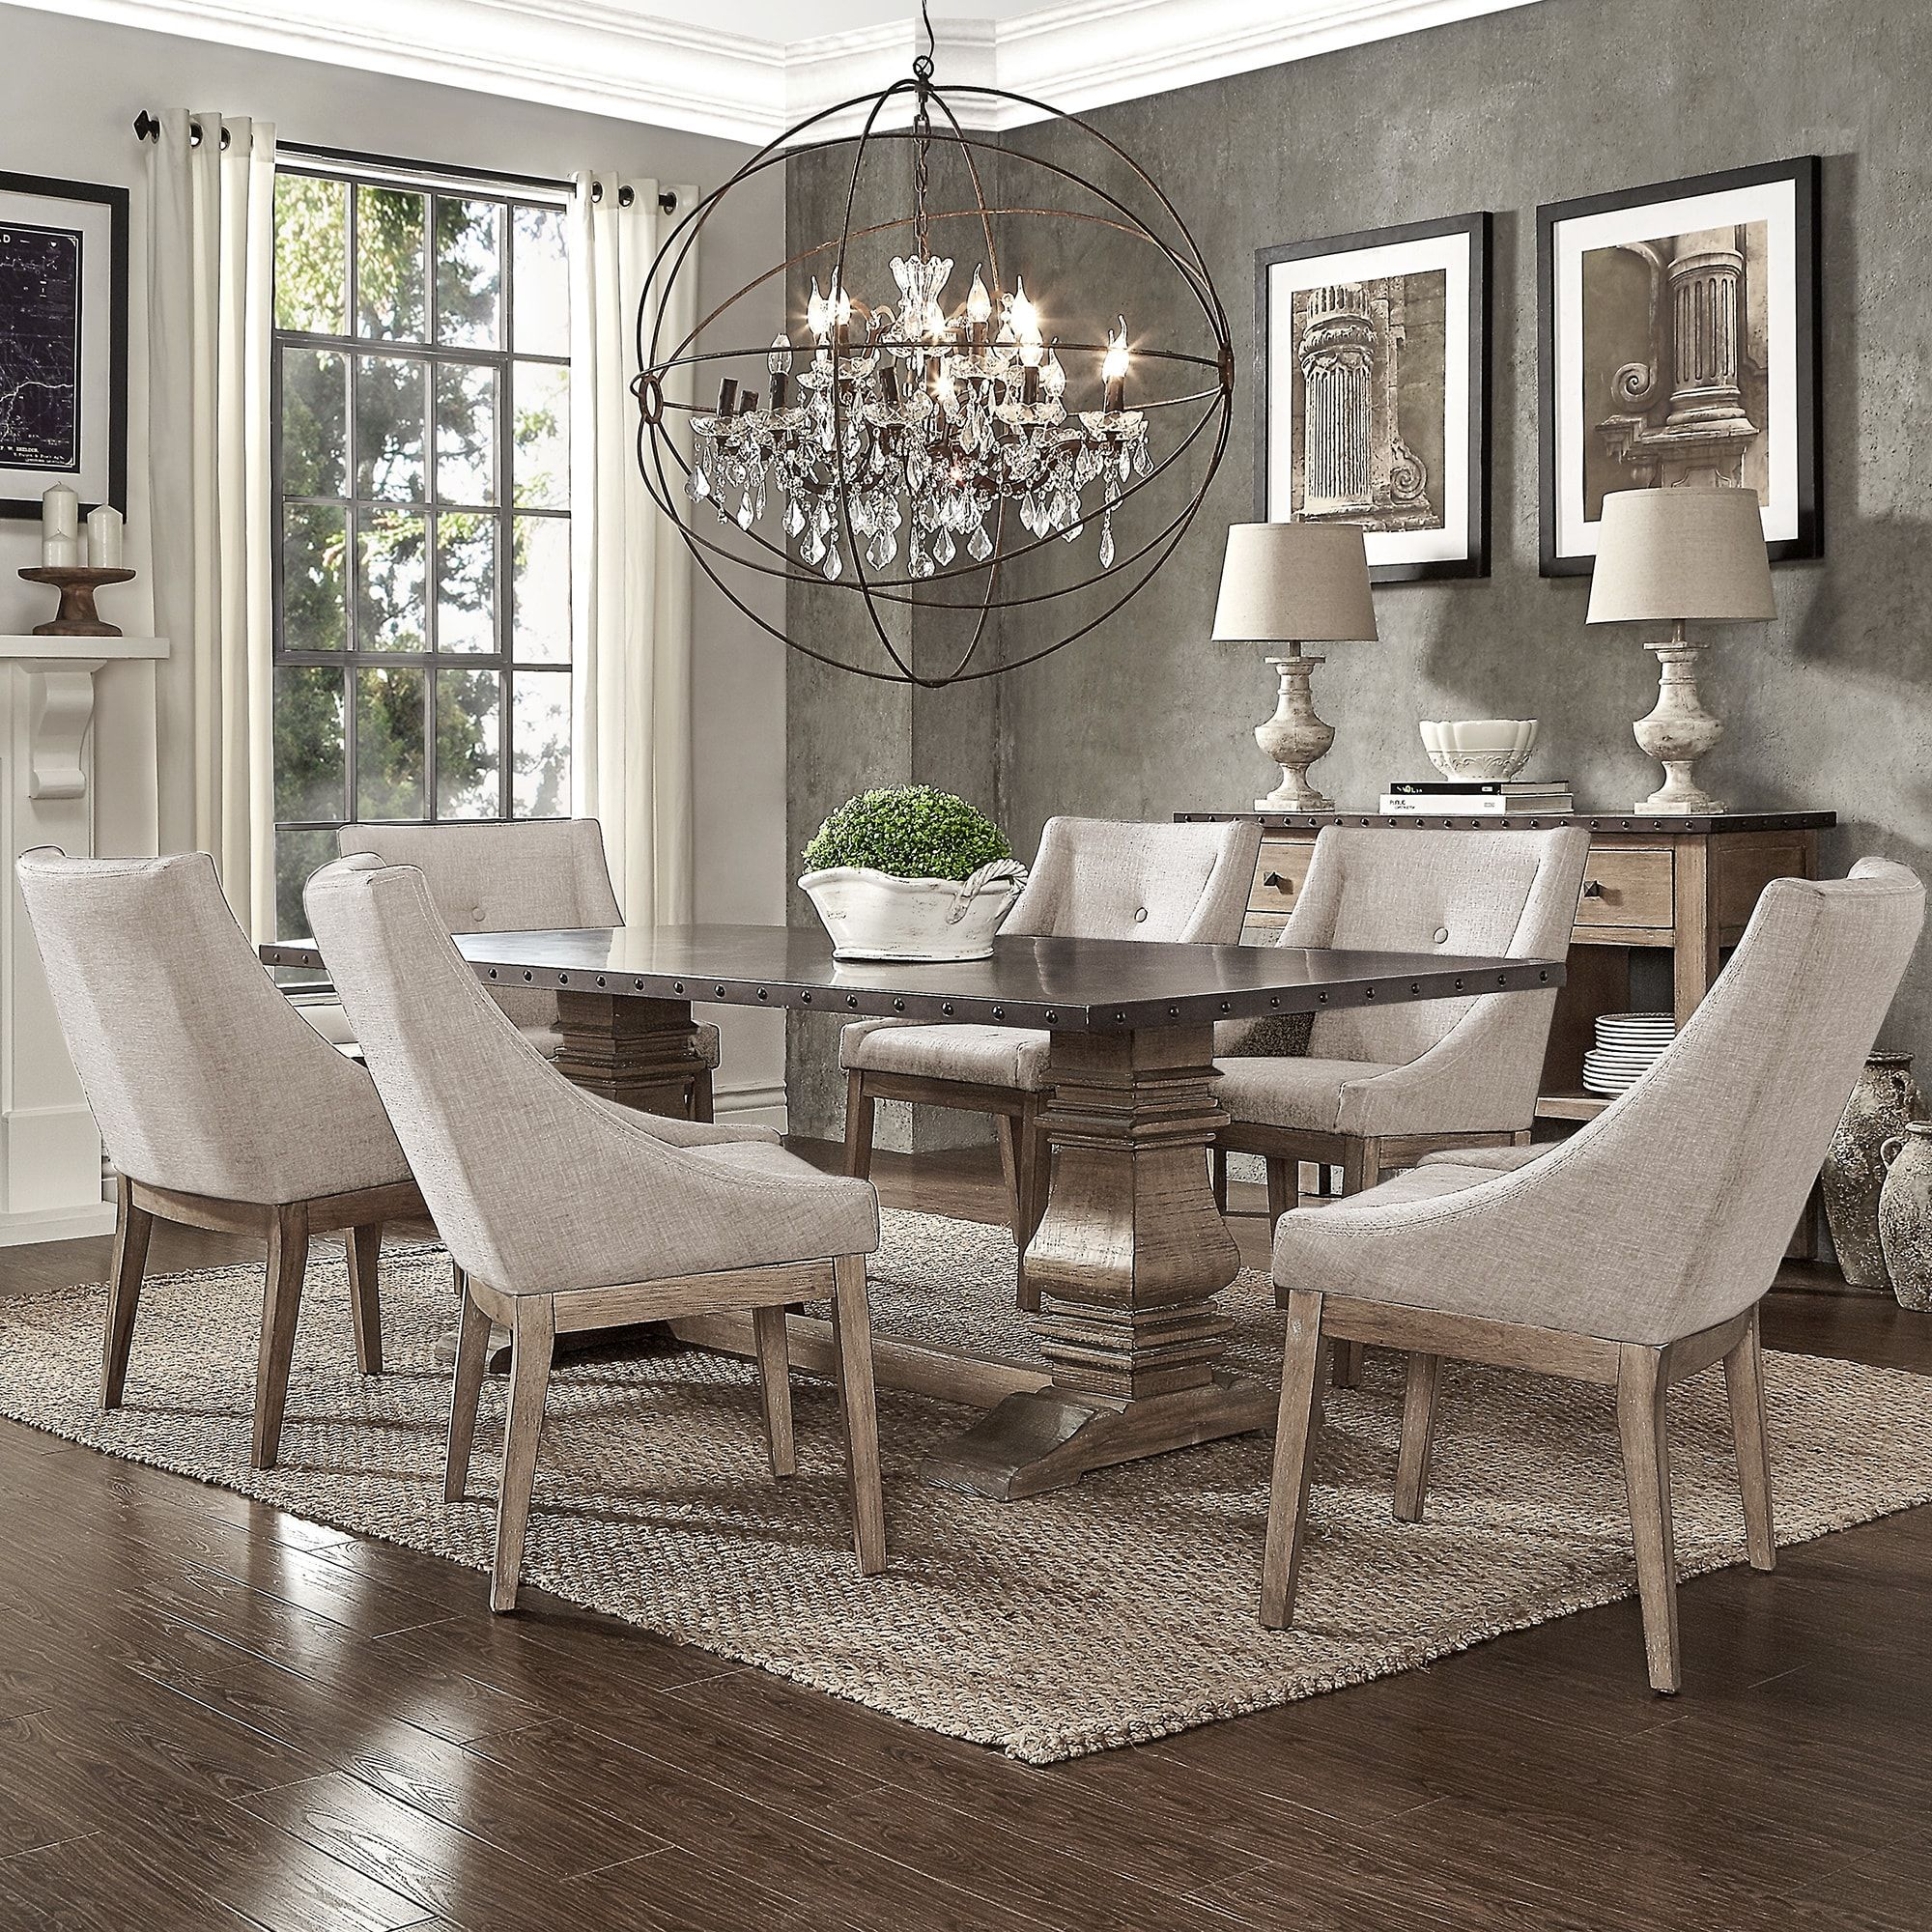 White Dining Room Sets Formal: Janelle Extended Rustic Zinc Dining Set